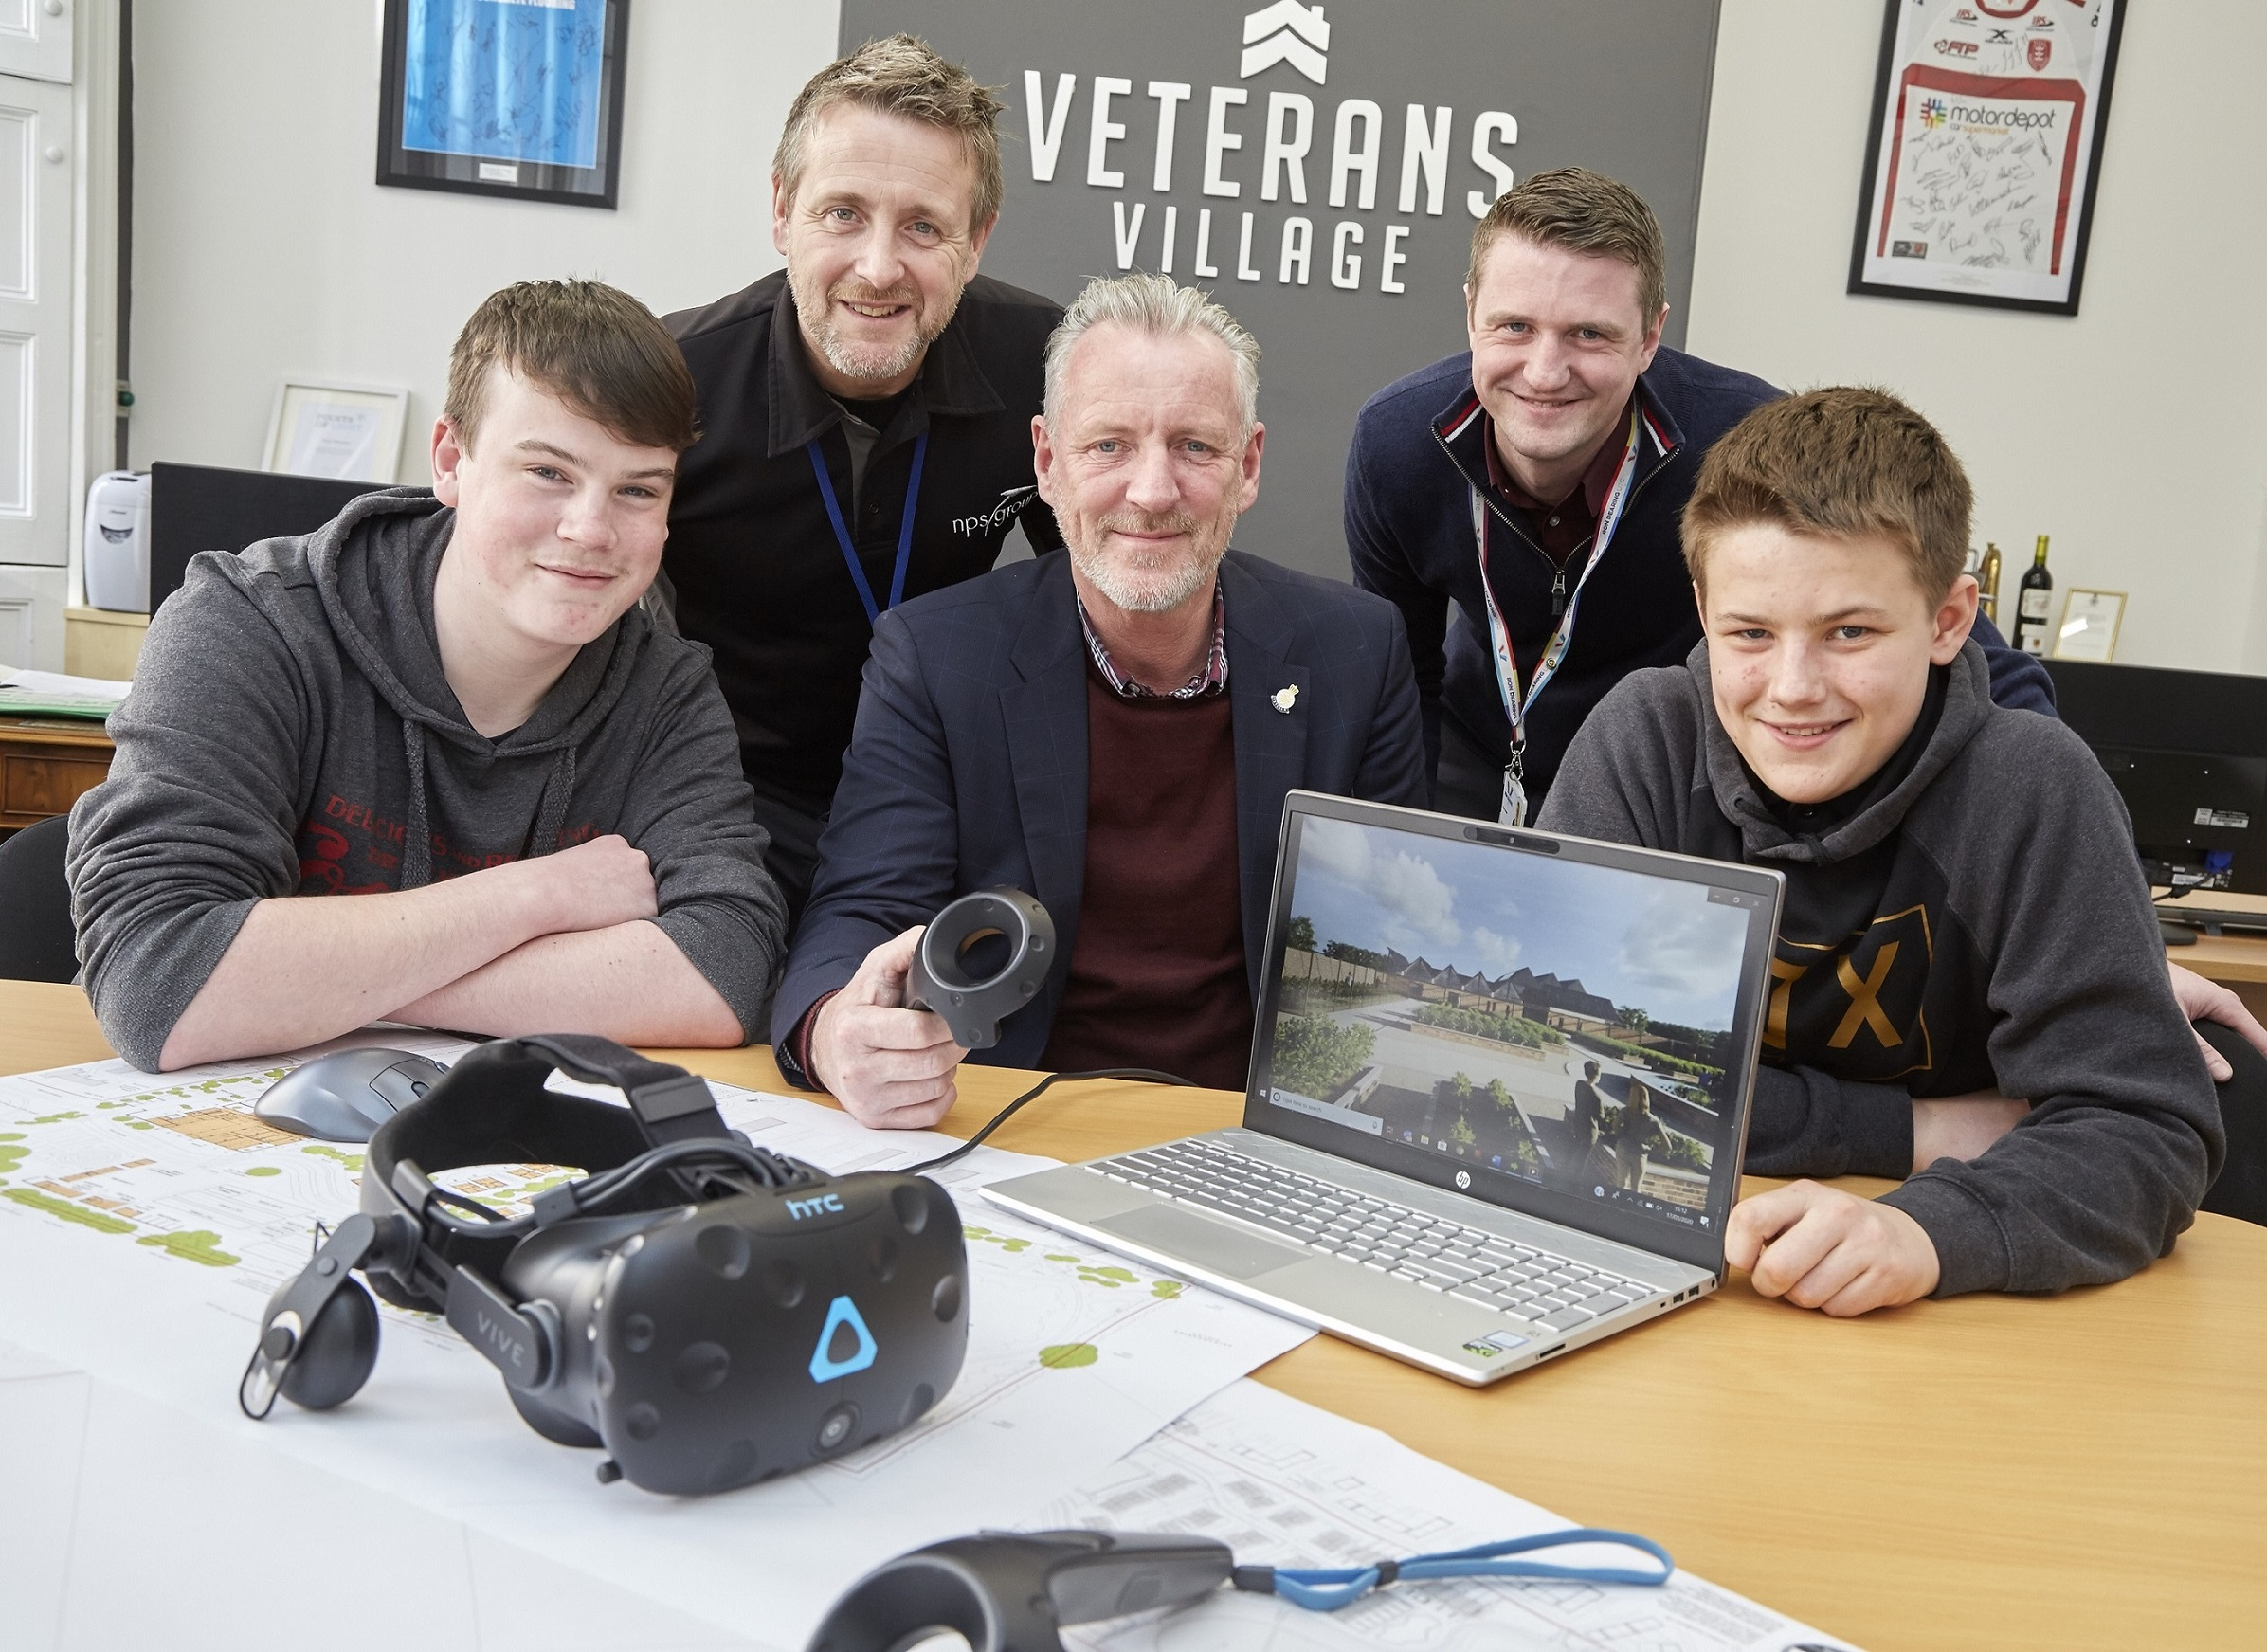 Students learn cutting-edge tech skills to bring Veterans Village to life